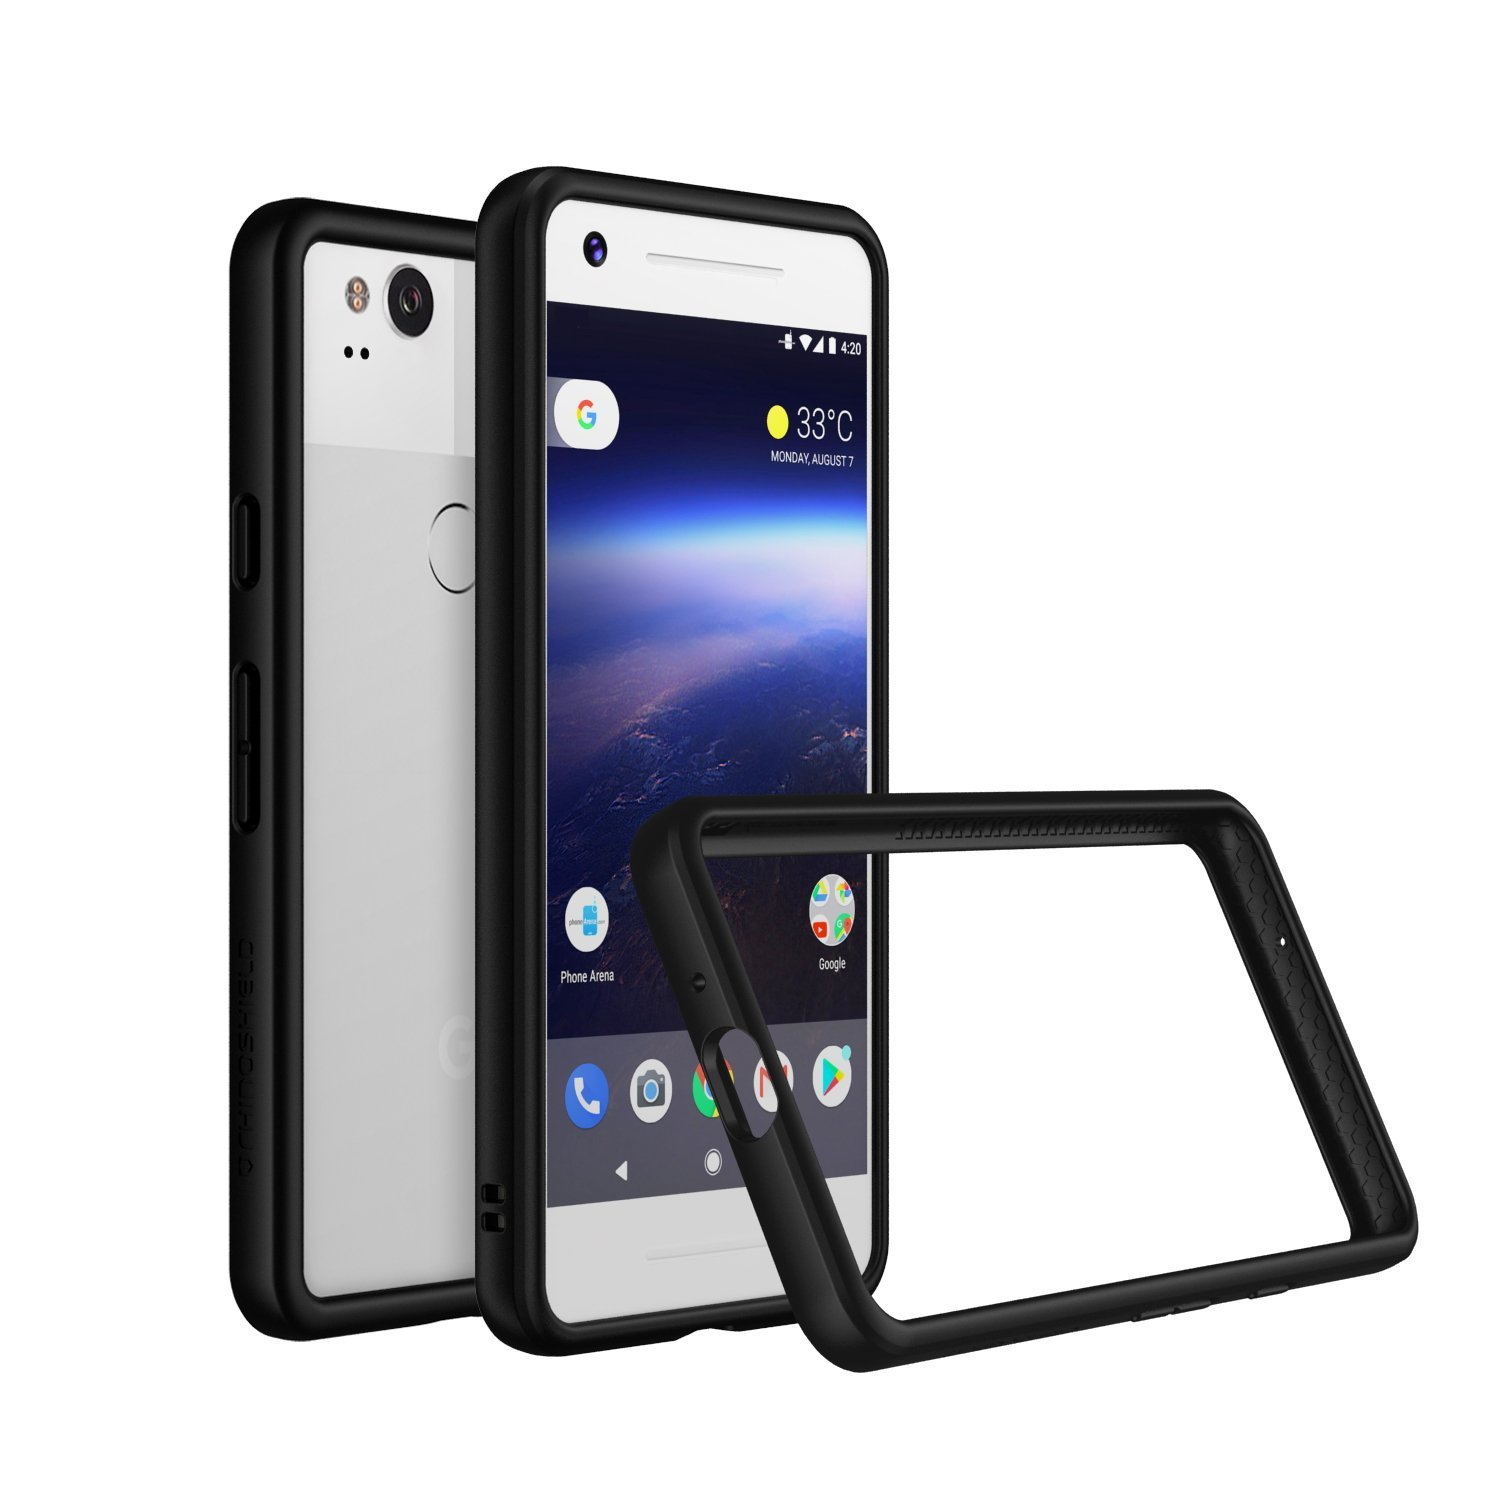 RhinoShield Bumper Case for Pixel 2 [NOT XL] | [CrashGuard] | Shock Absorbent Slim Design Protective Cover [3.5M / 12ft Drop Protection] - Black by RhinoShield